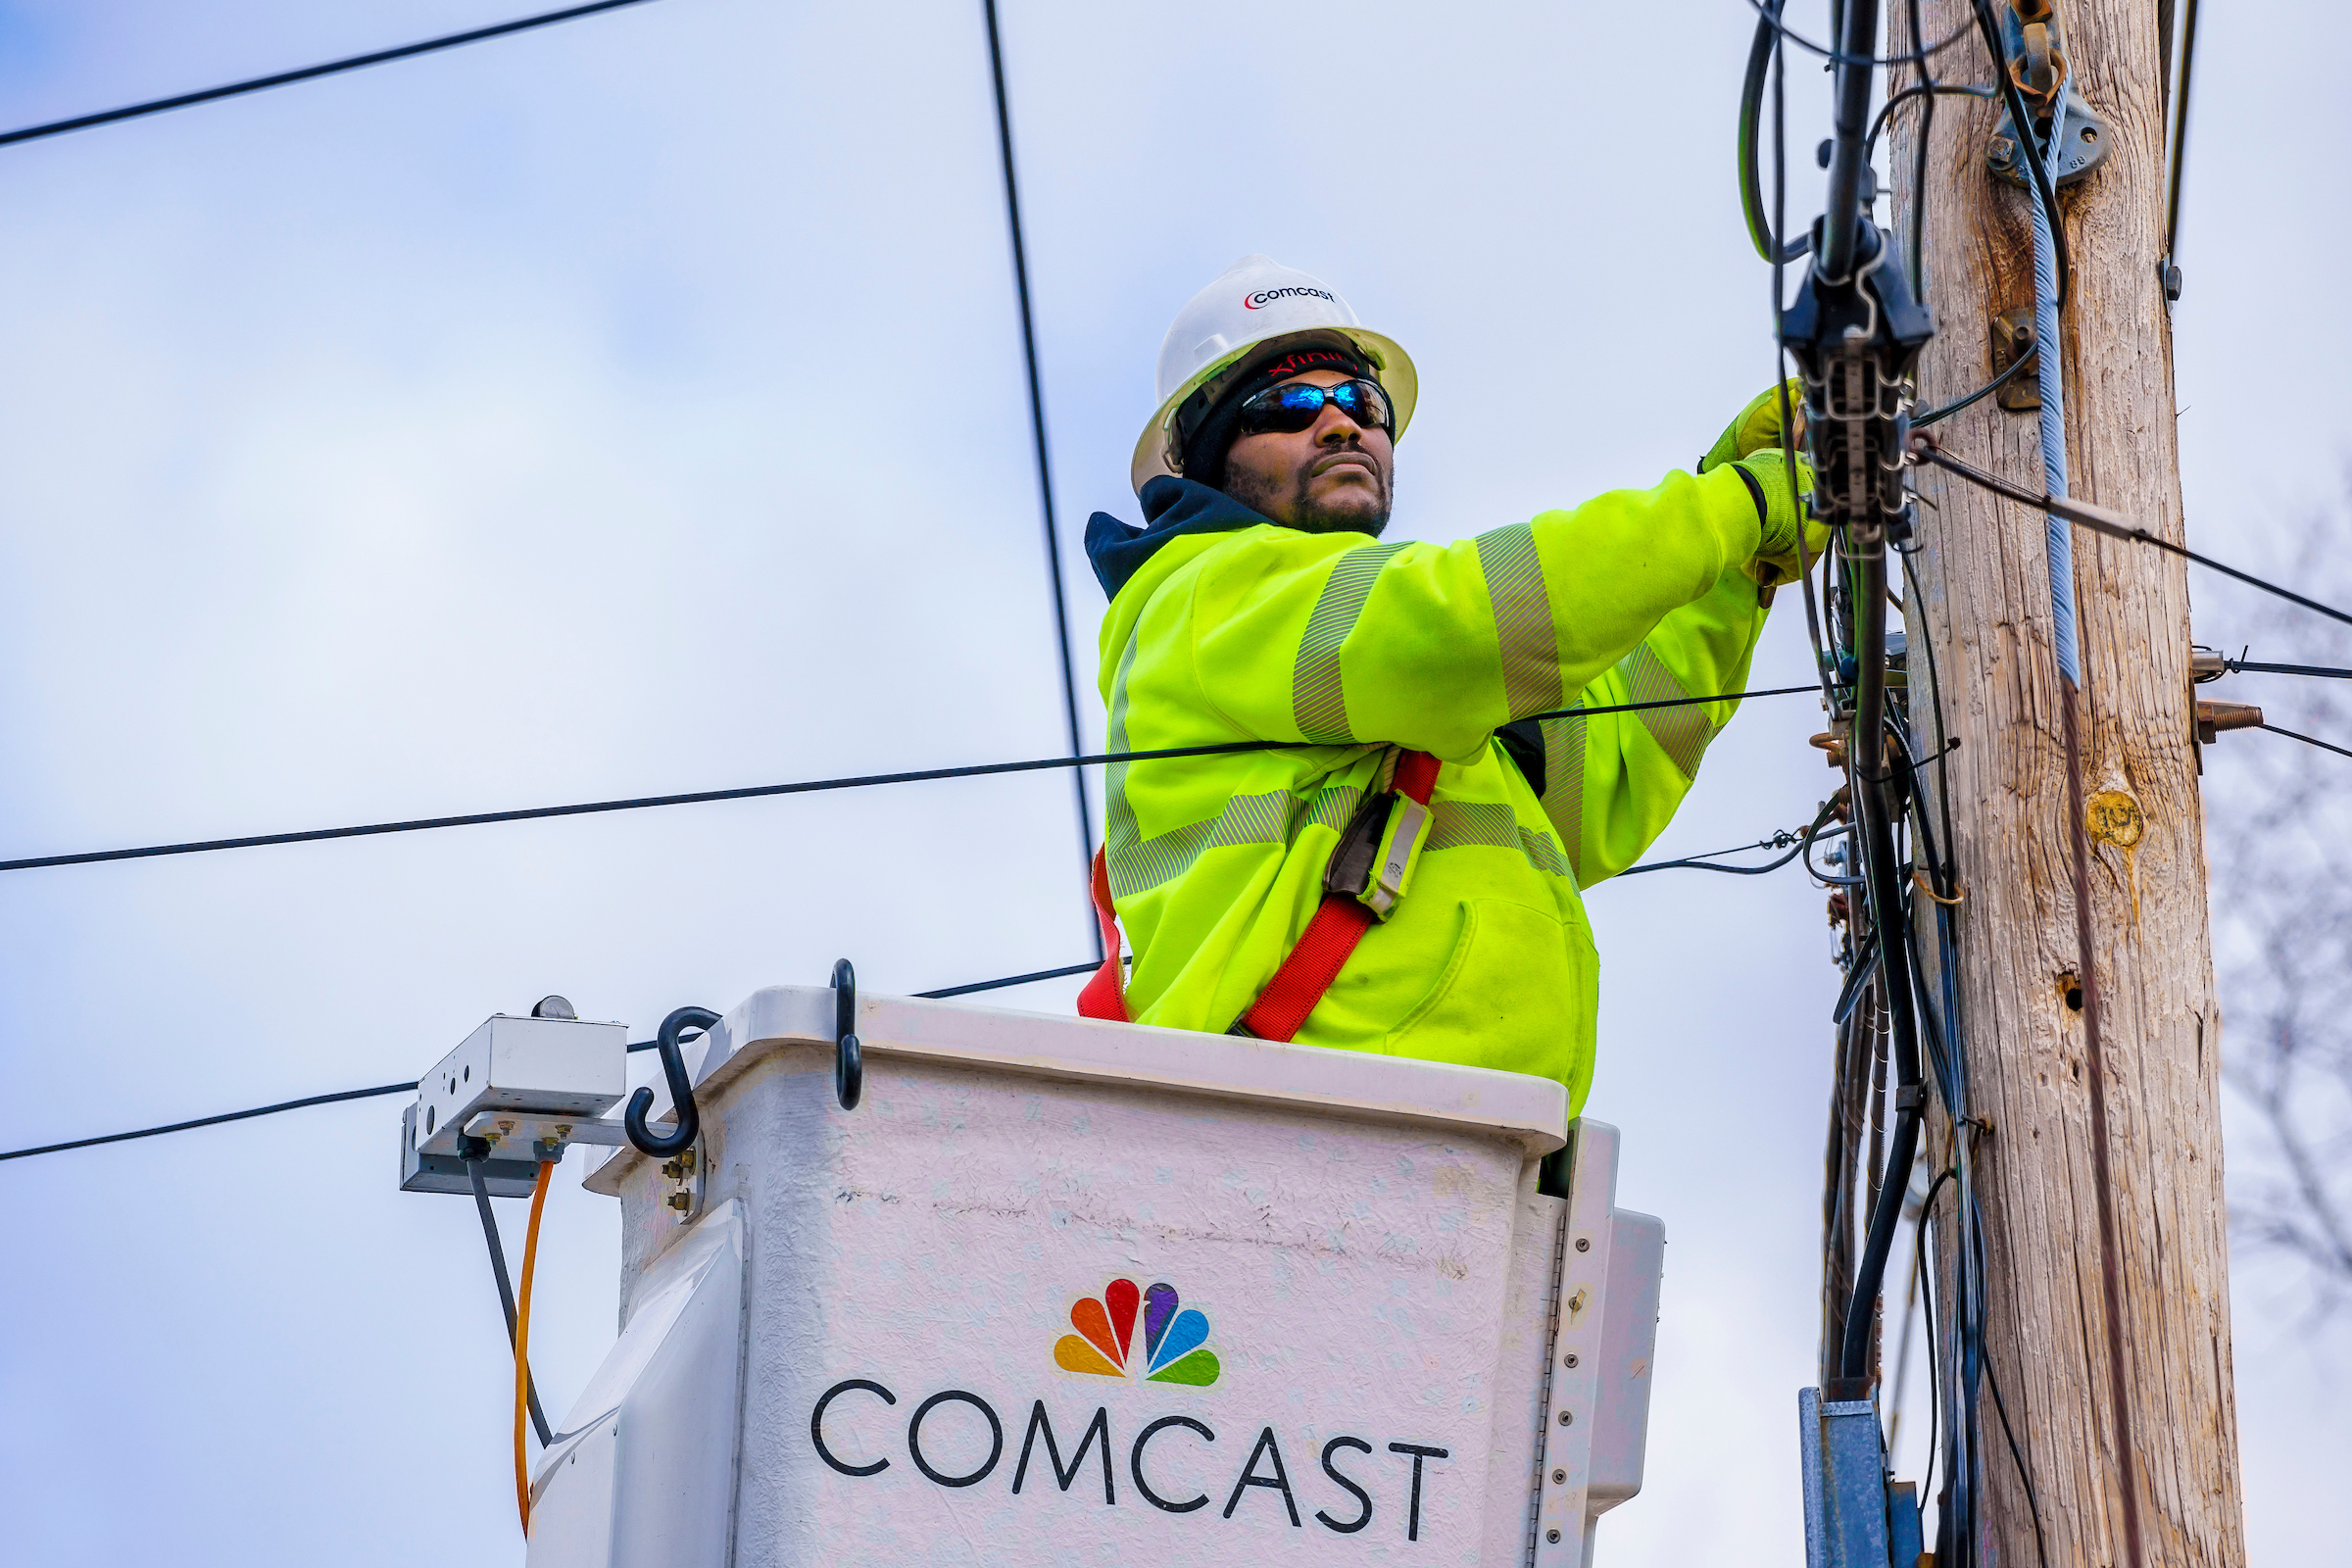 comcast worker working on wires